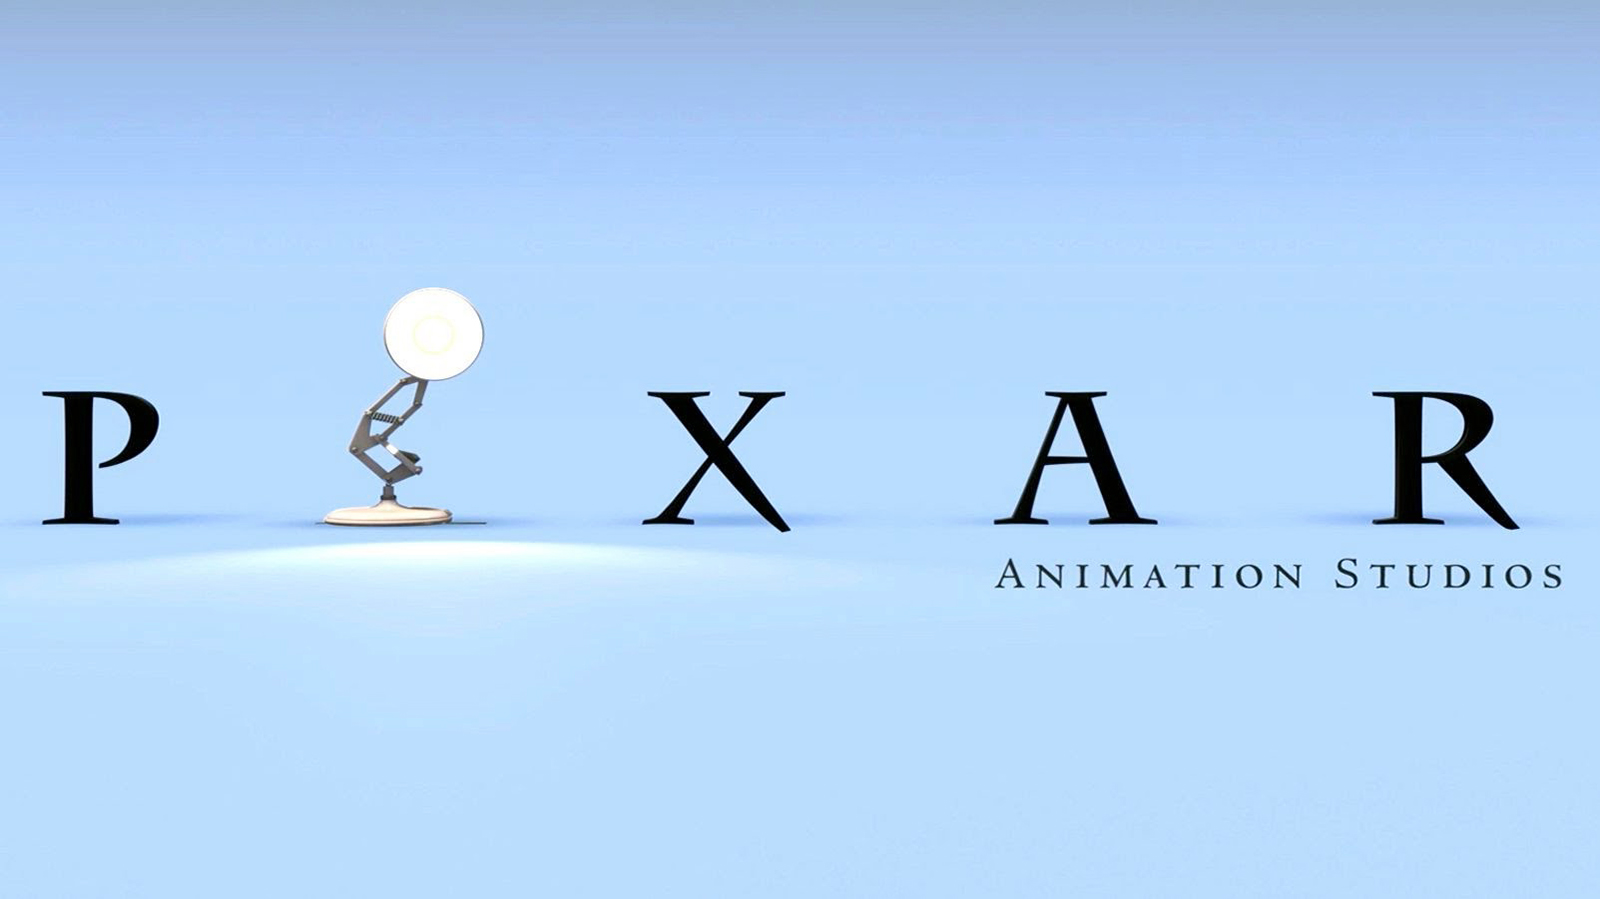 I've written copy for every Pixar campaign since Monsters, Inc.